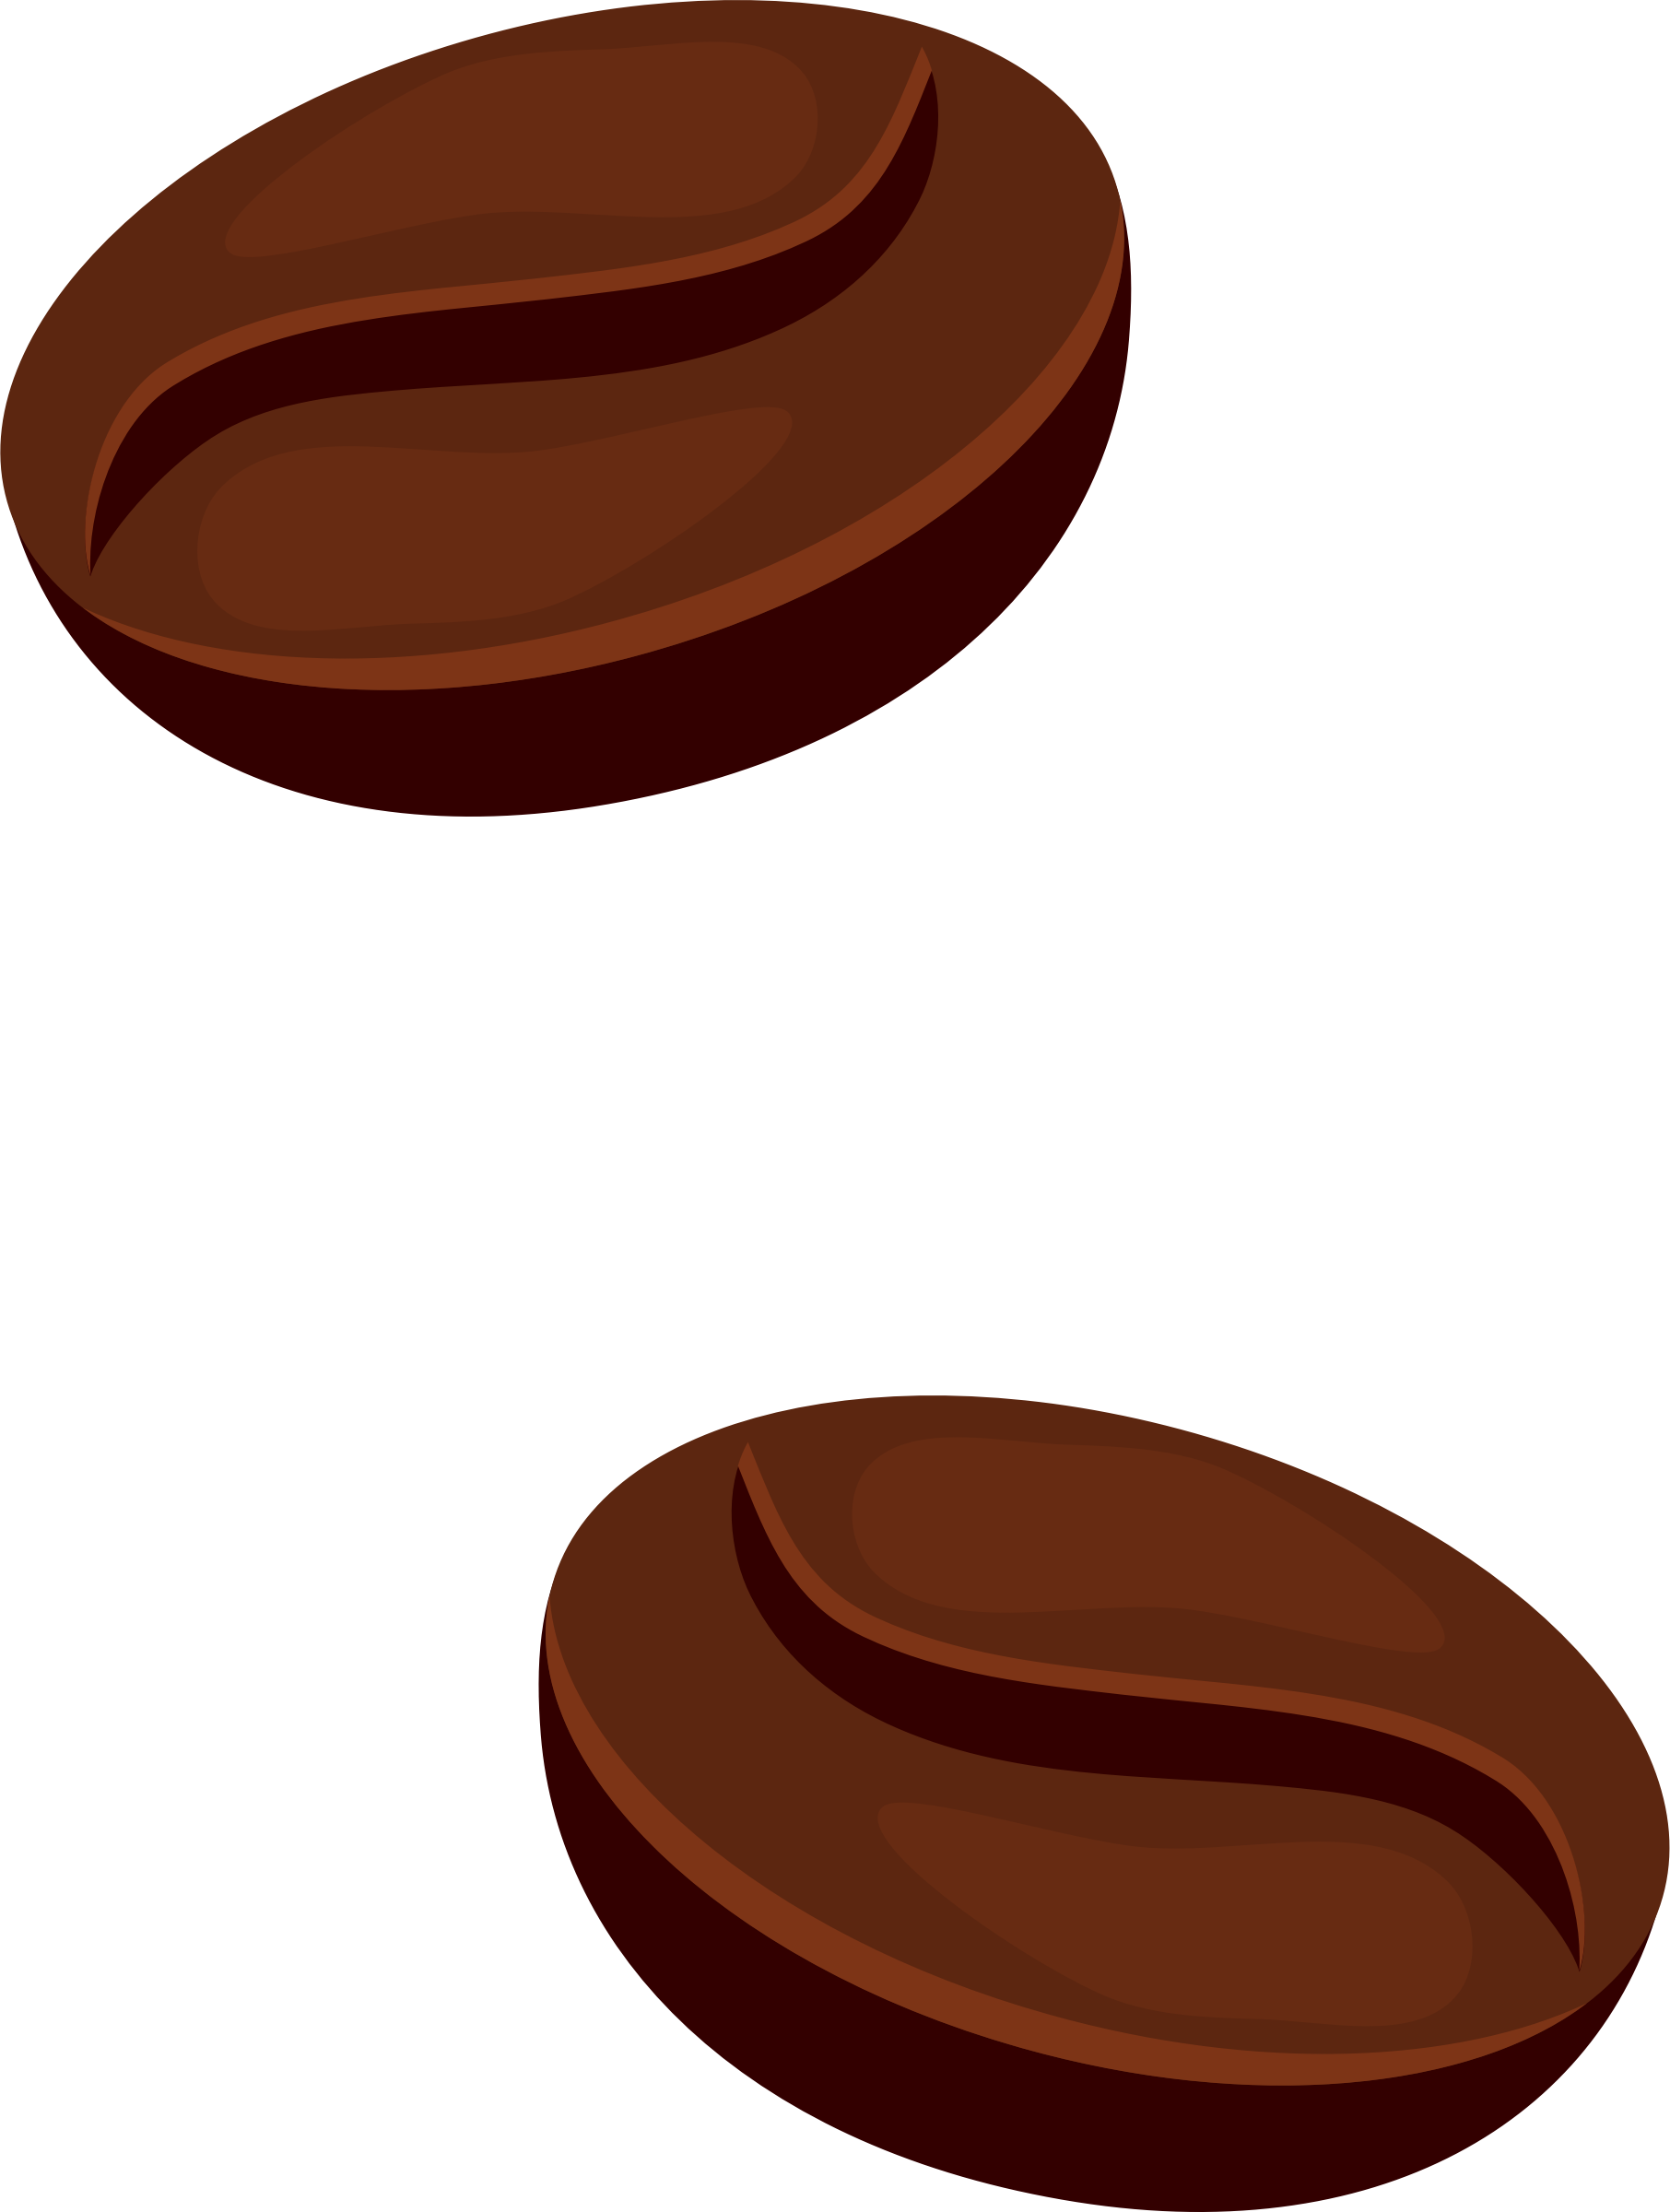 Images For > Coffee Bean Vector Png Cliparts.co Coffee